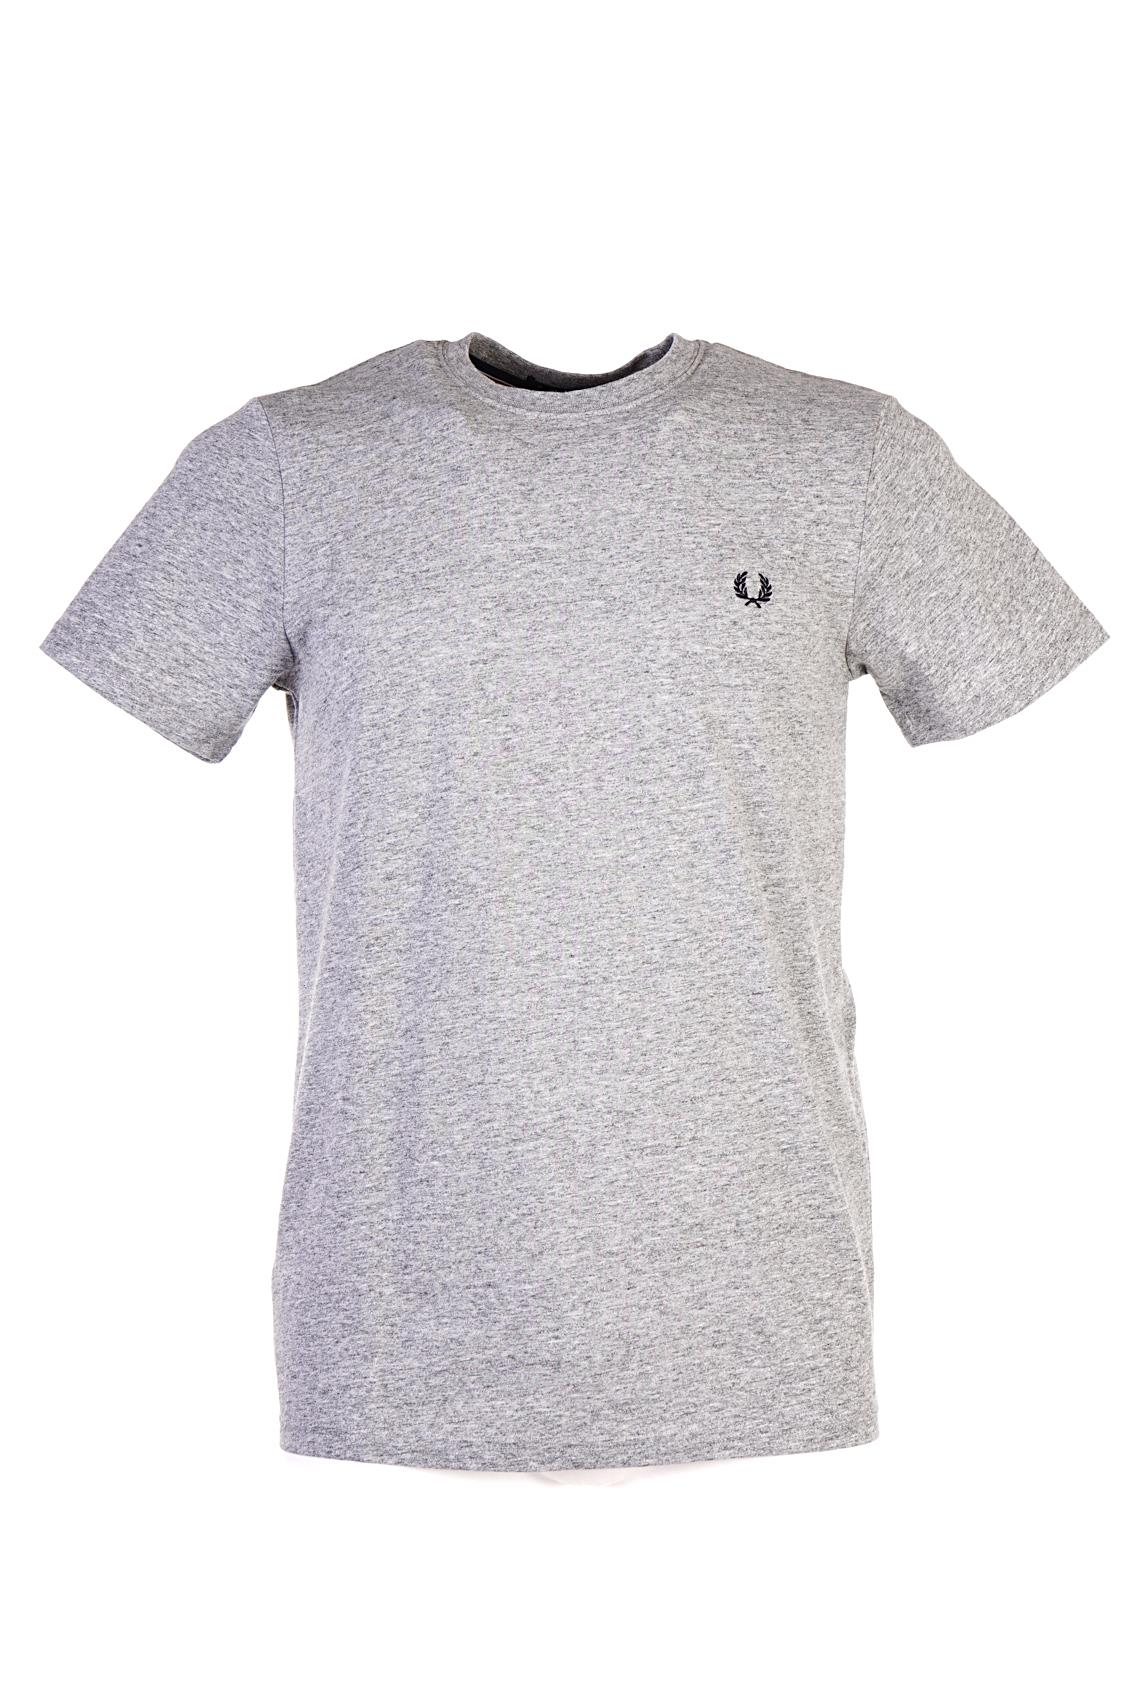 Vintage fred perry clothing